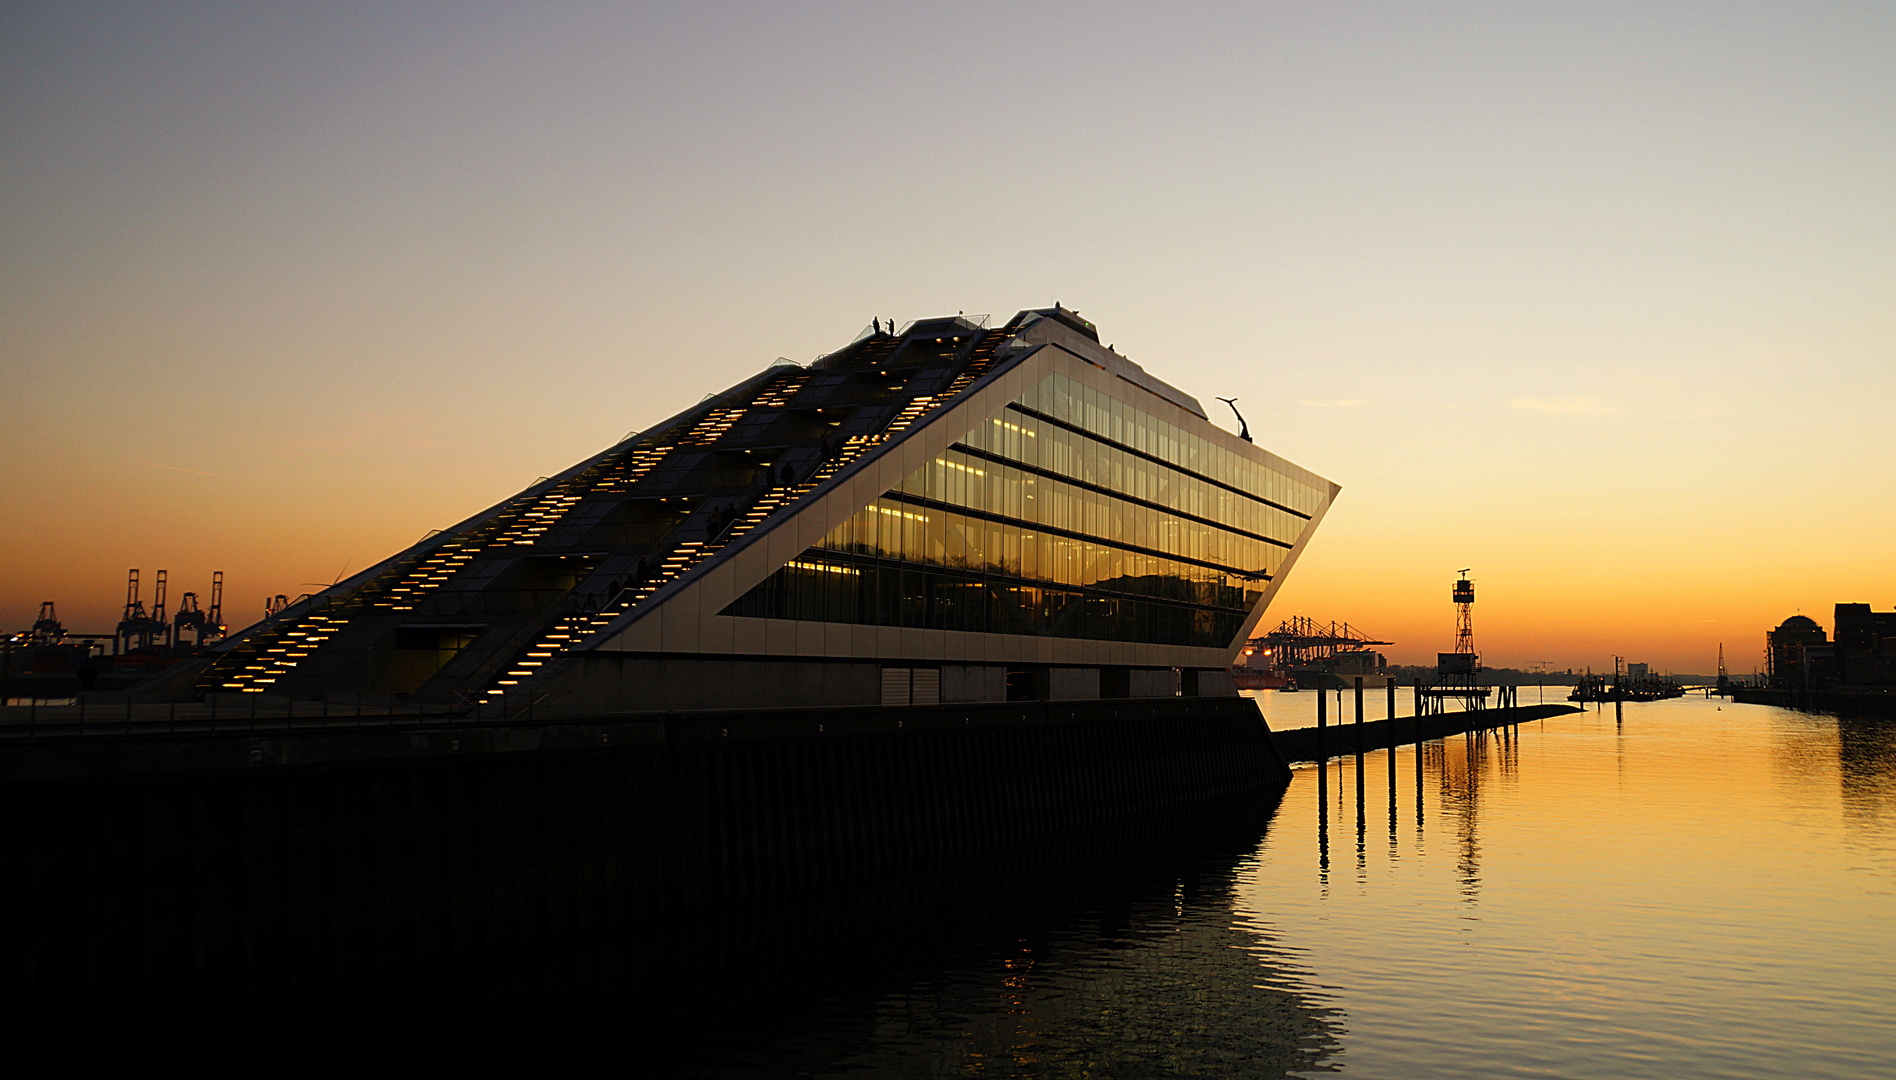 Dockland am Abend 2